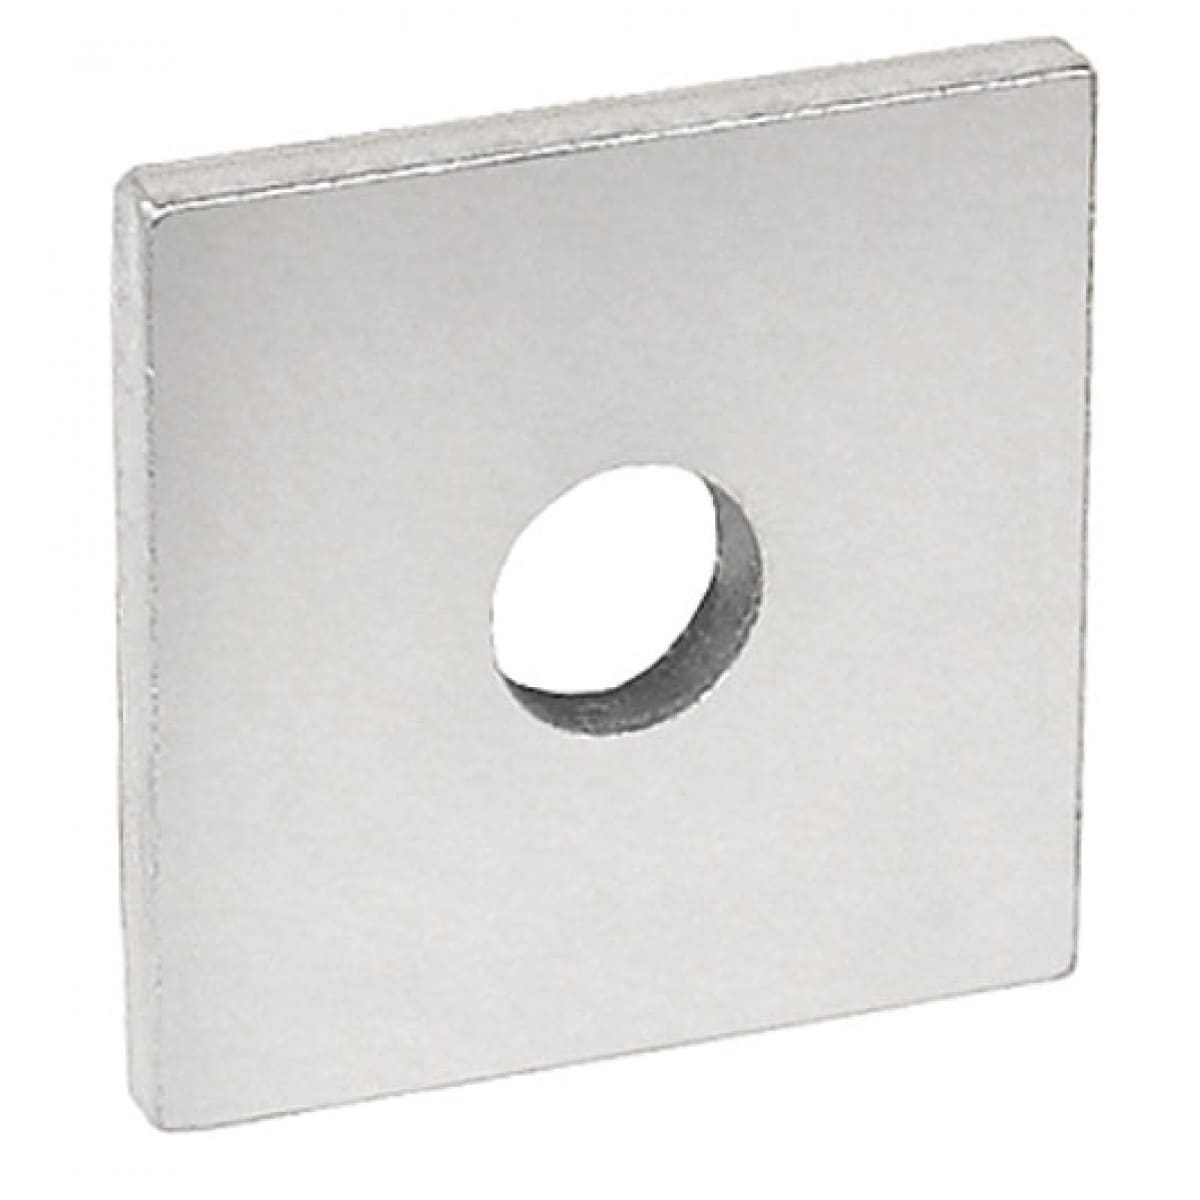 10 Pcs, 1-5/8 in. Square Strut Washer, for 5/8 in. bolt, Zinc Plated Steel, Zinc Plated Steel